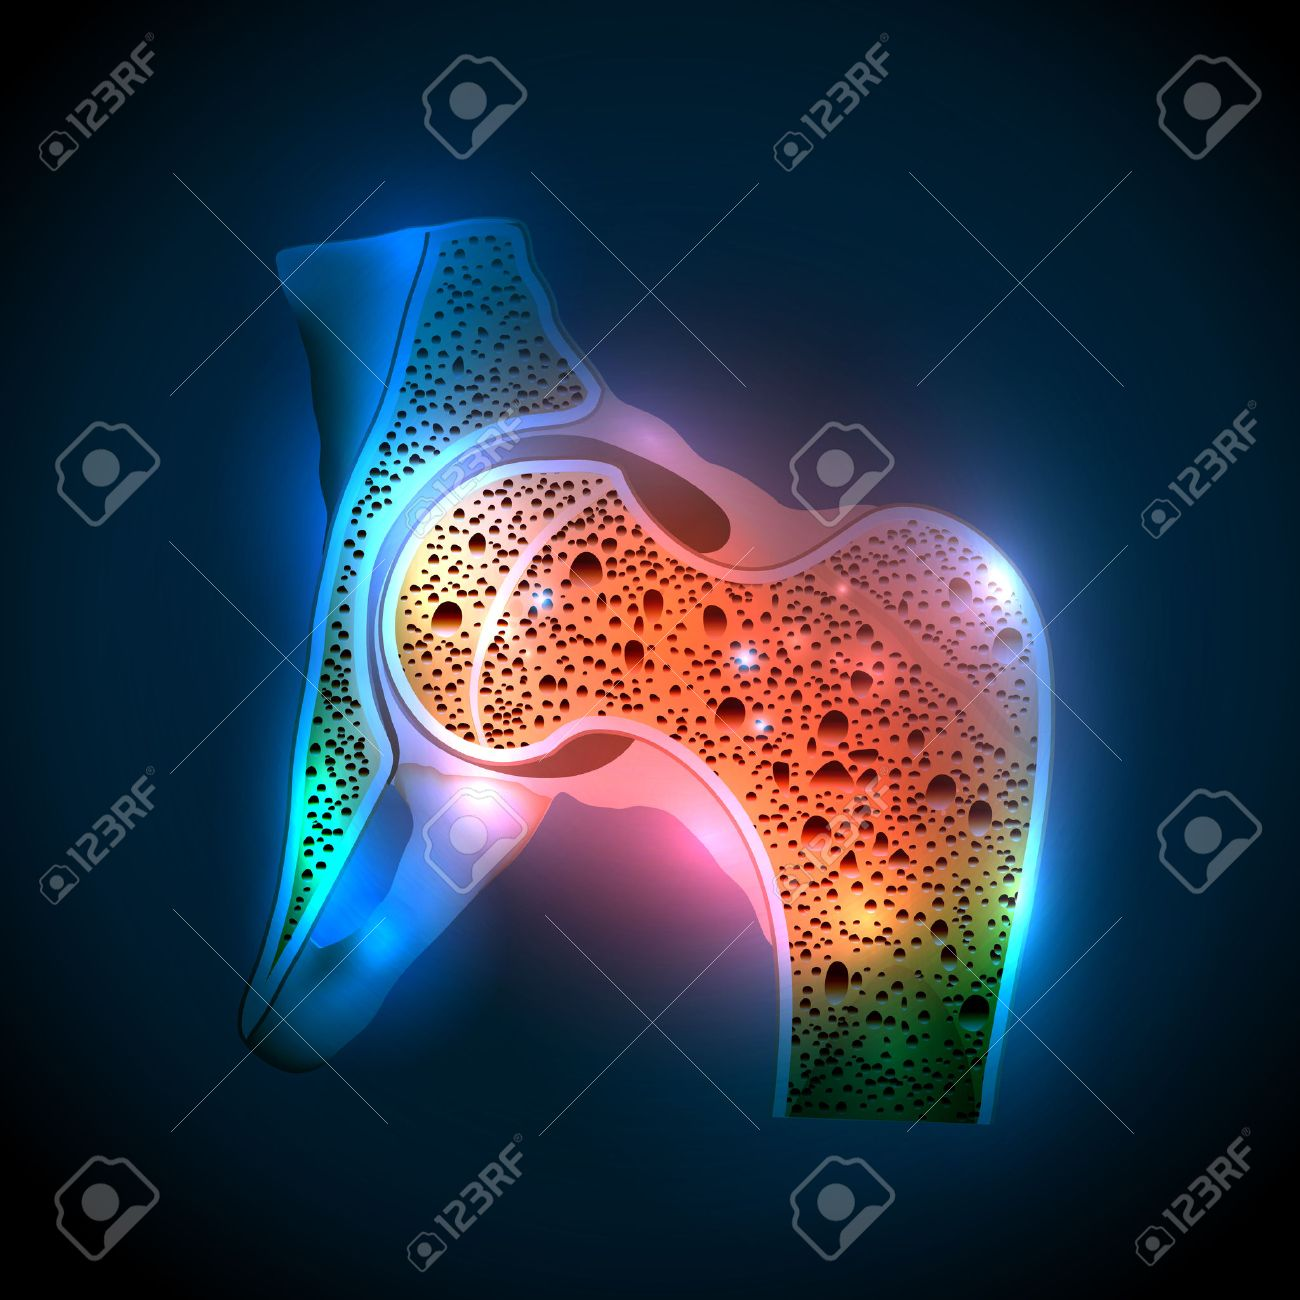 Human Hip Joint And Osteoporosis On A Abstract Blue Background 1300x1300